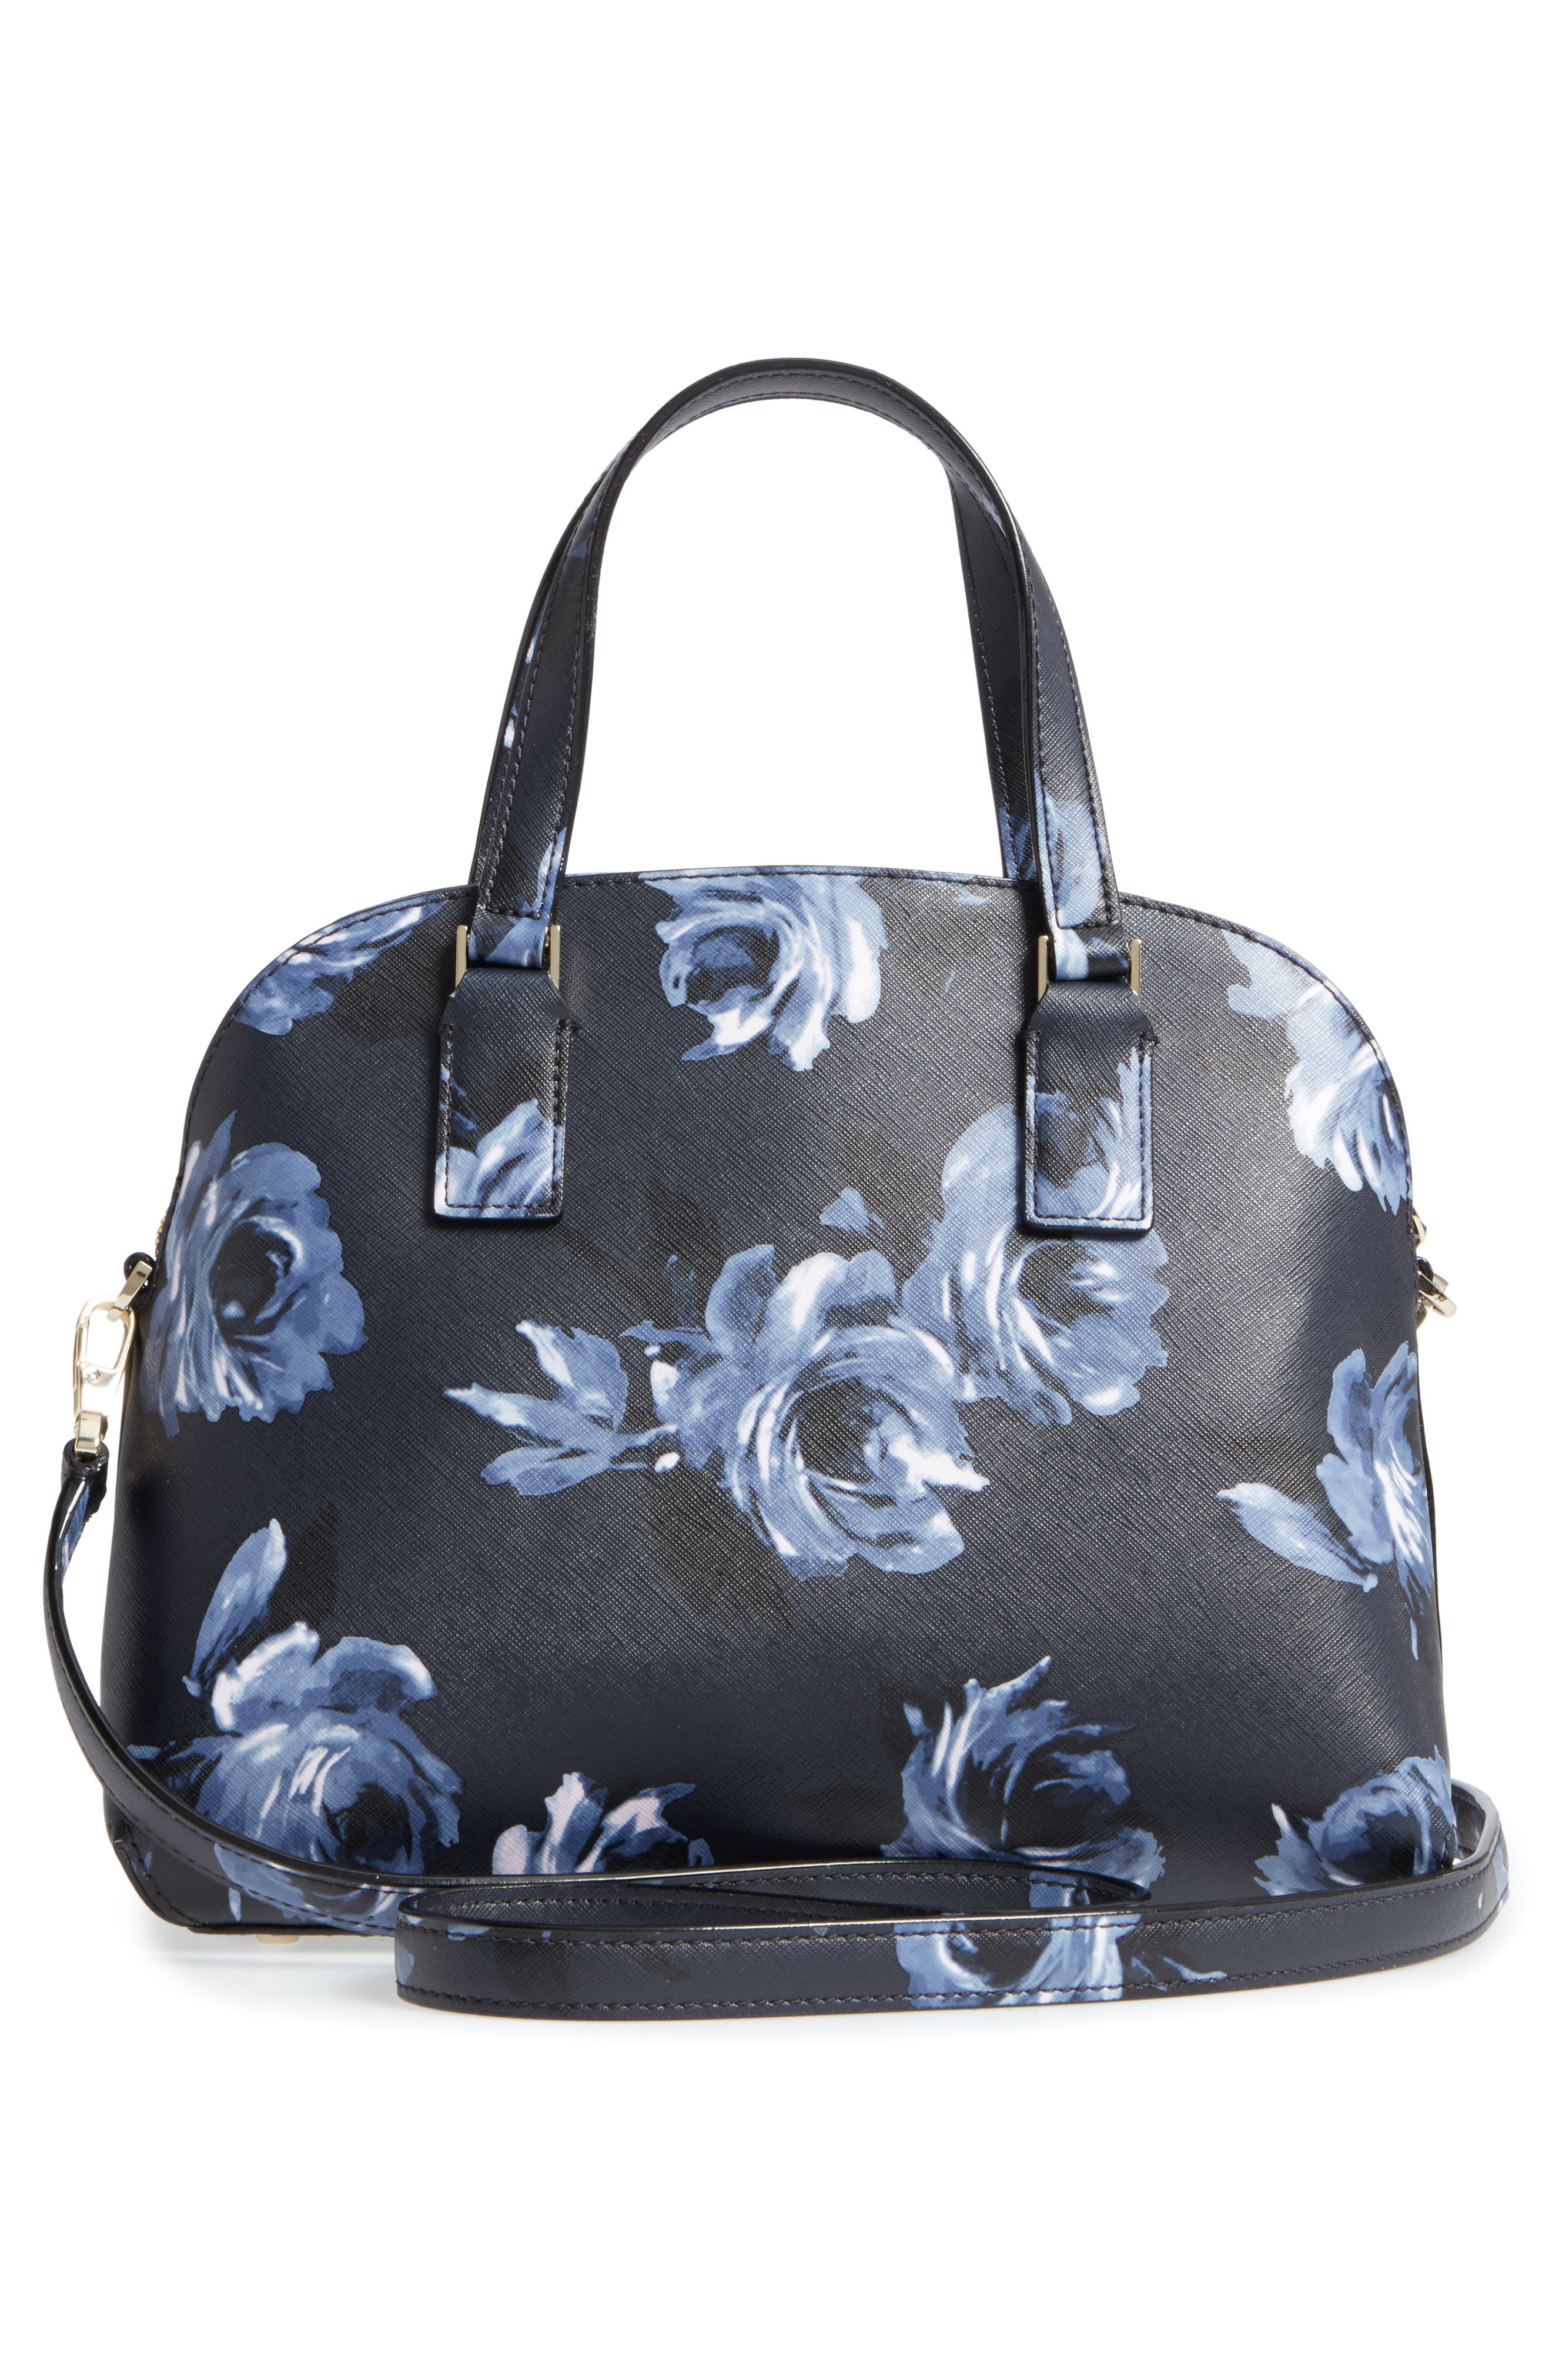 cameron street lottie floral faux leather satchel,                             Alternate thumbnail 3, color,                             Rich Navy Multi